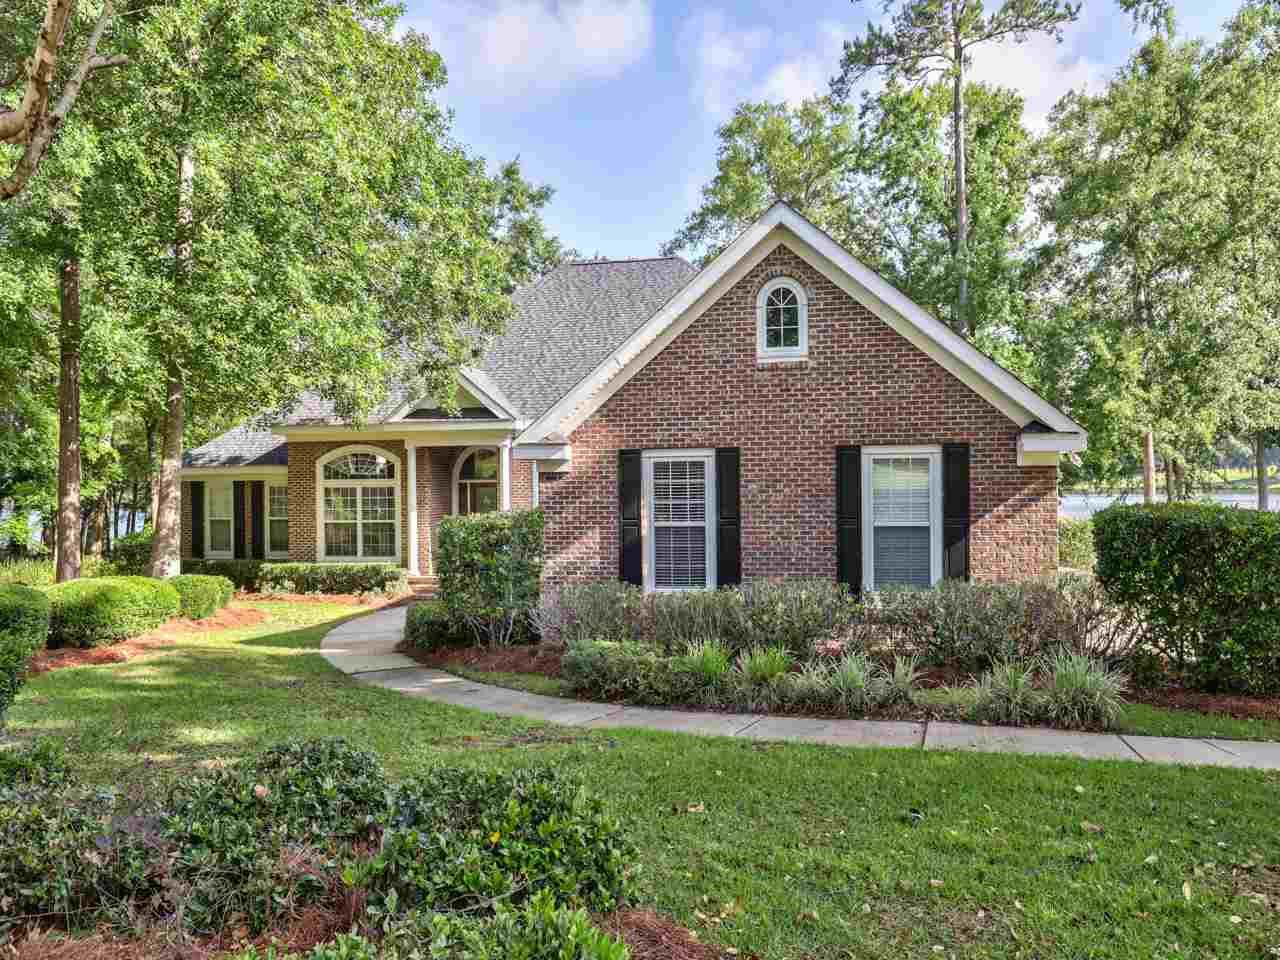 Photo of 8191 Glenmore Drive, TALLAHASSEE, FL 32312 (MLS # 319013)